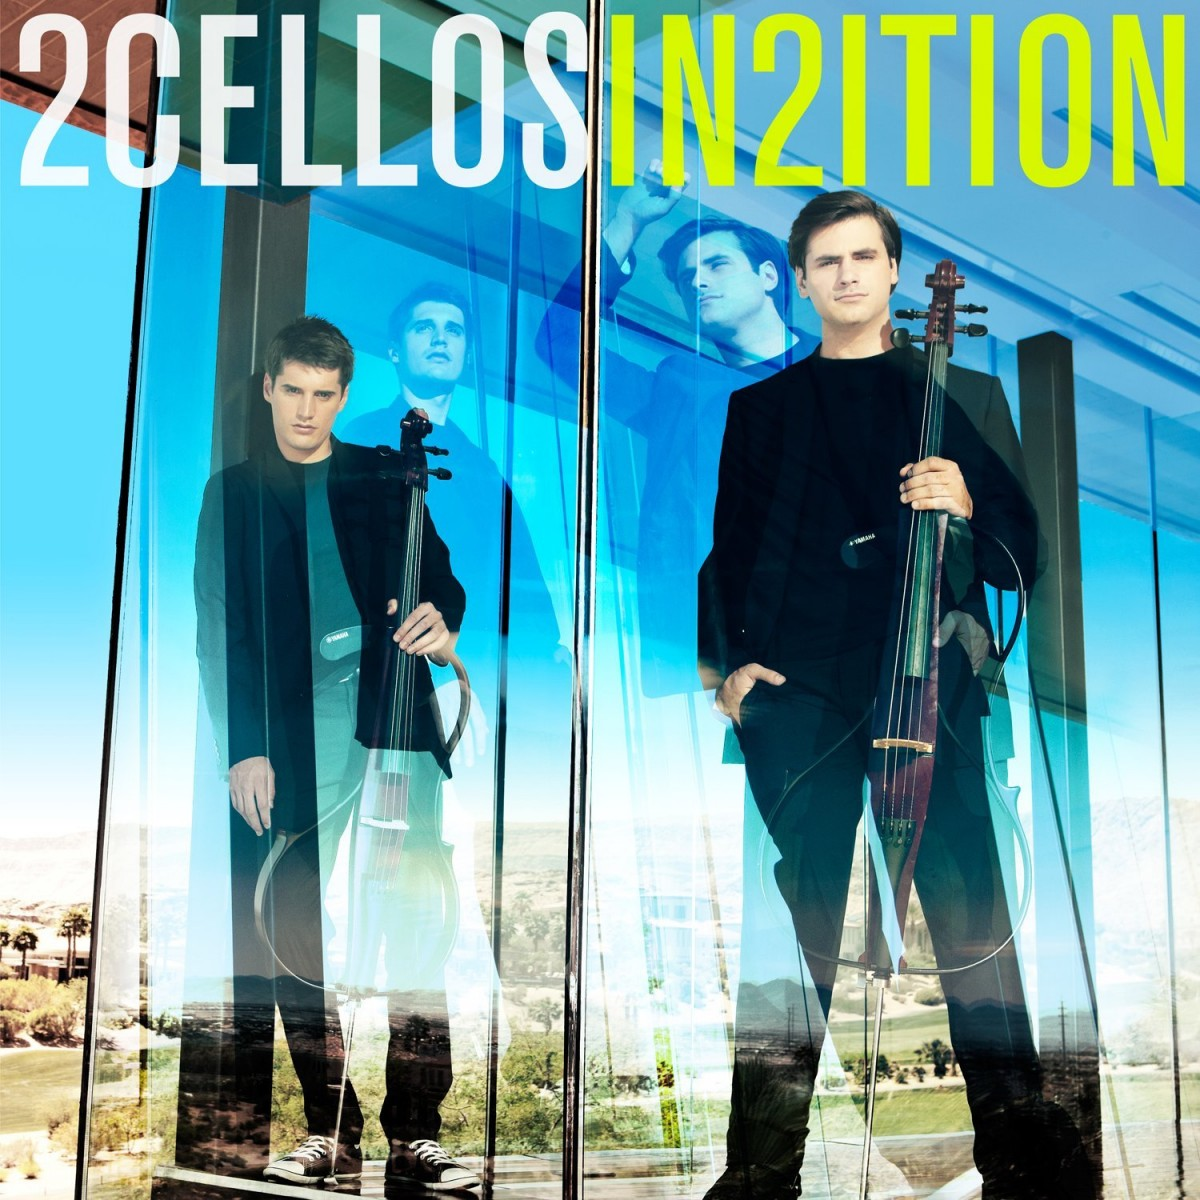 stevevai.it - 2Cellos - In2ition